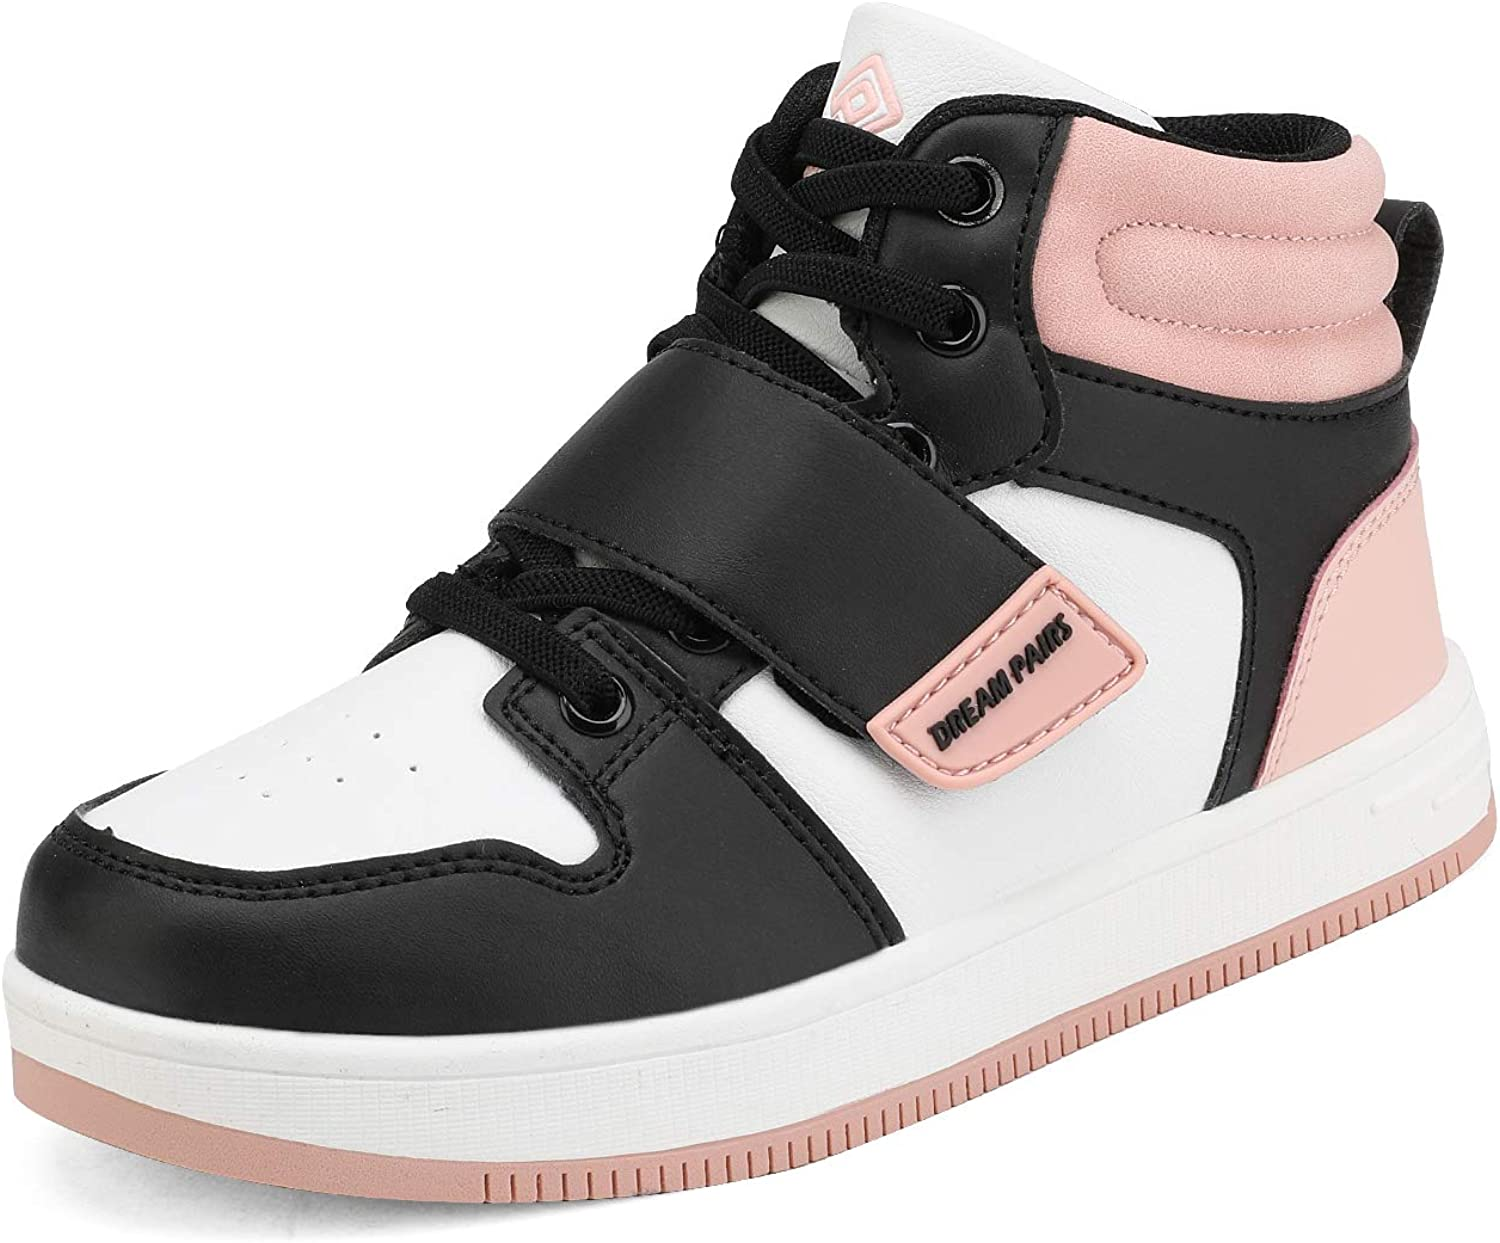 DREAM PAIRS Boys Girls High Great interest Top Shoes Max 84% OFF Basketball Sneaker